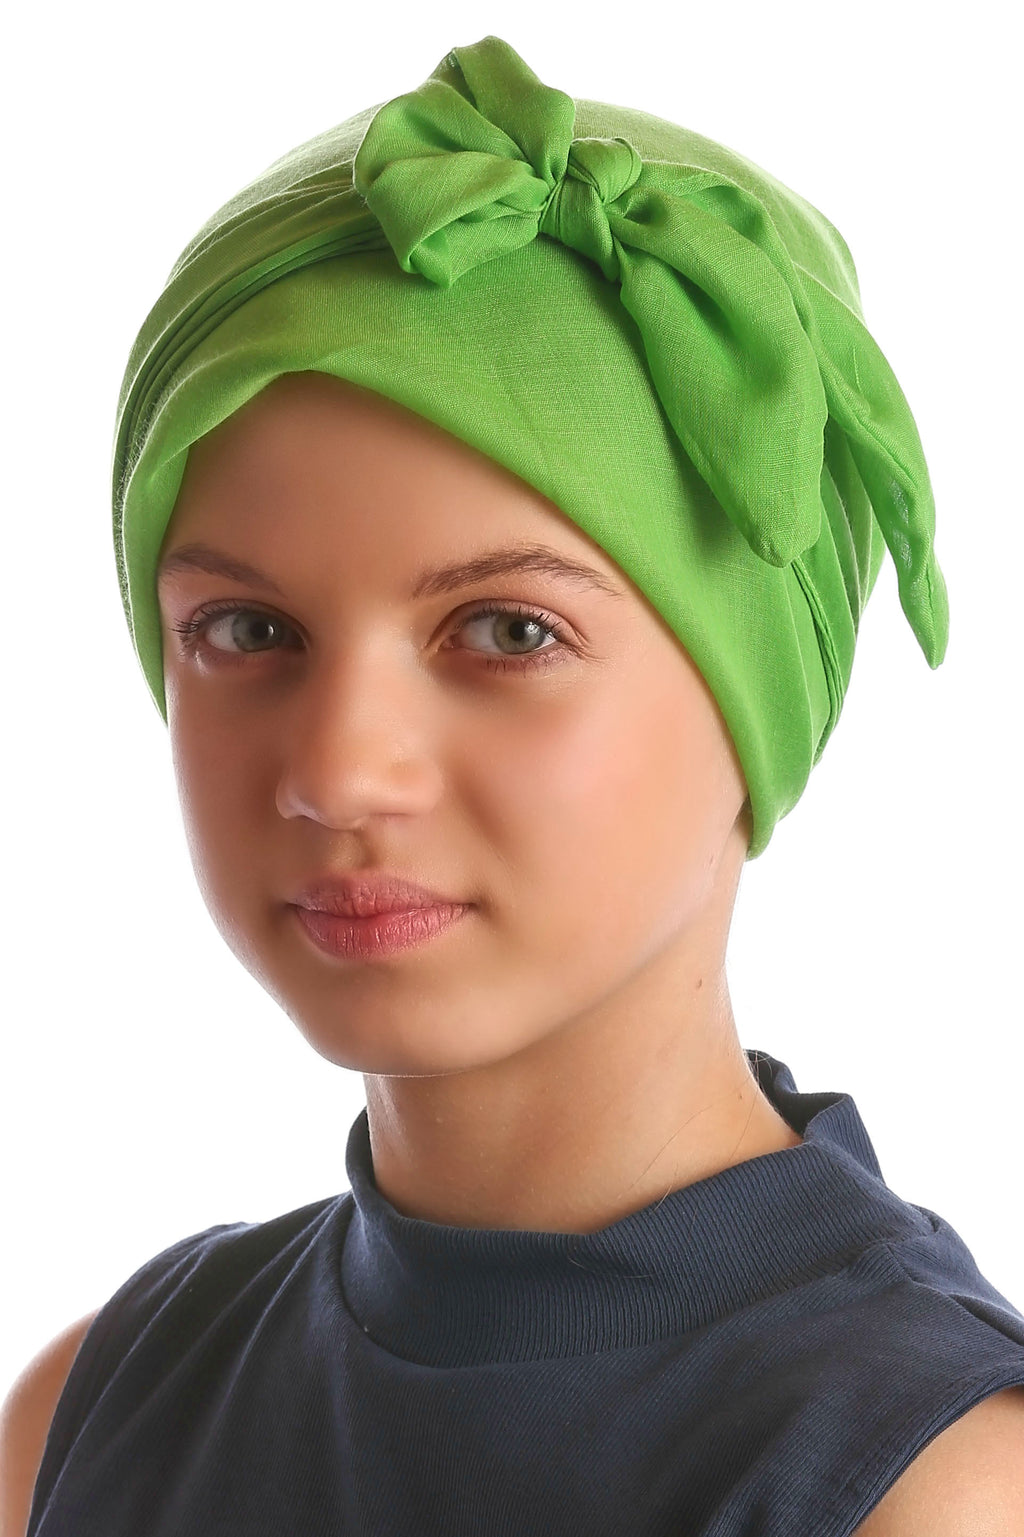 Easy Tie Head Scarf for Girls - Apple Green